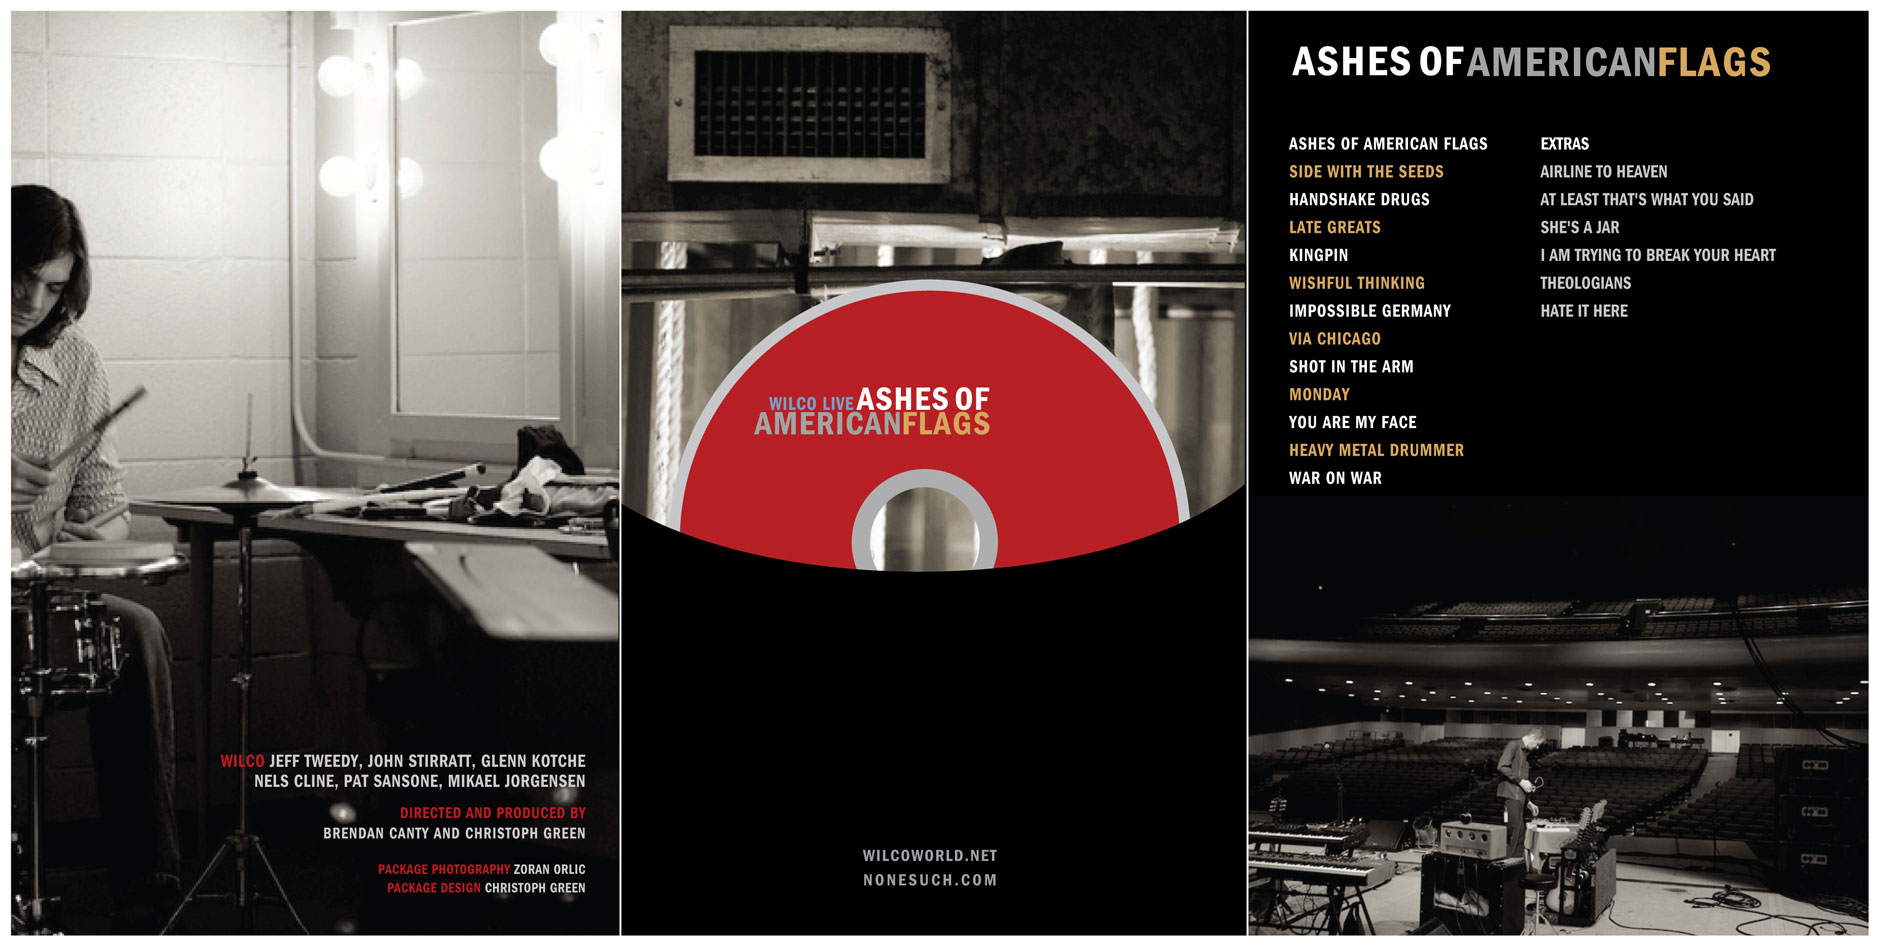 ASHES-INSIDE1-DUP.jpg